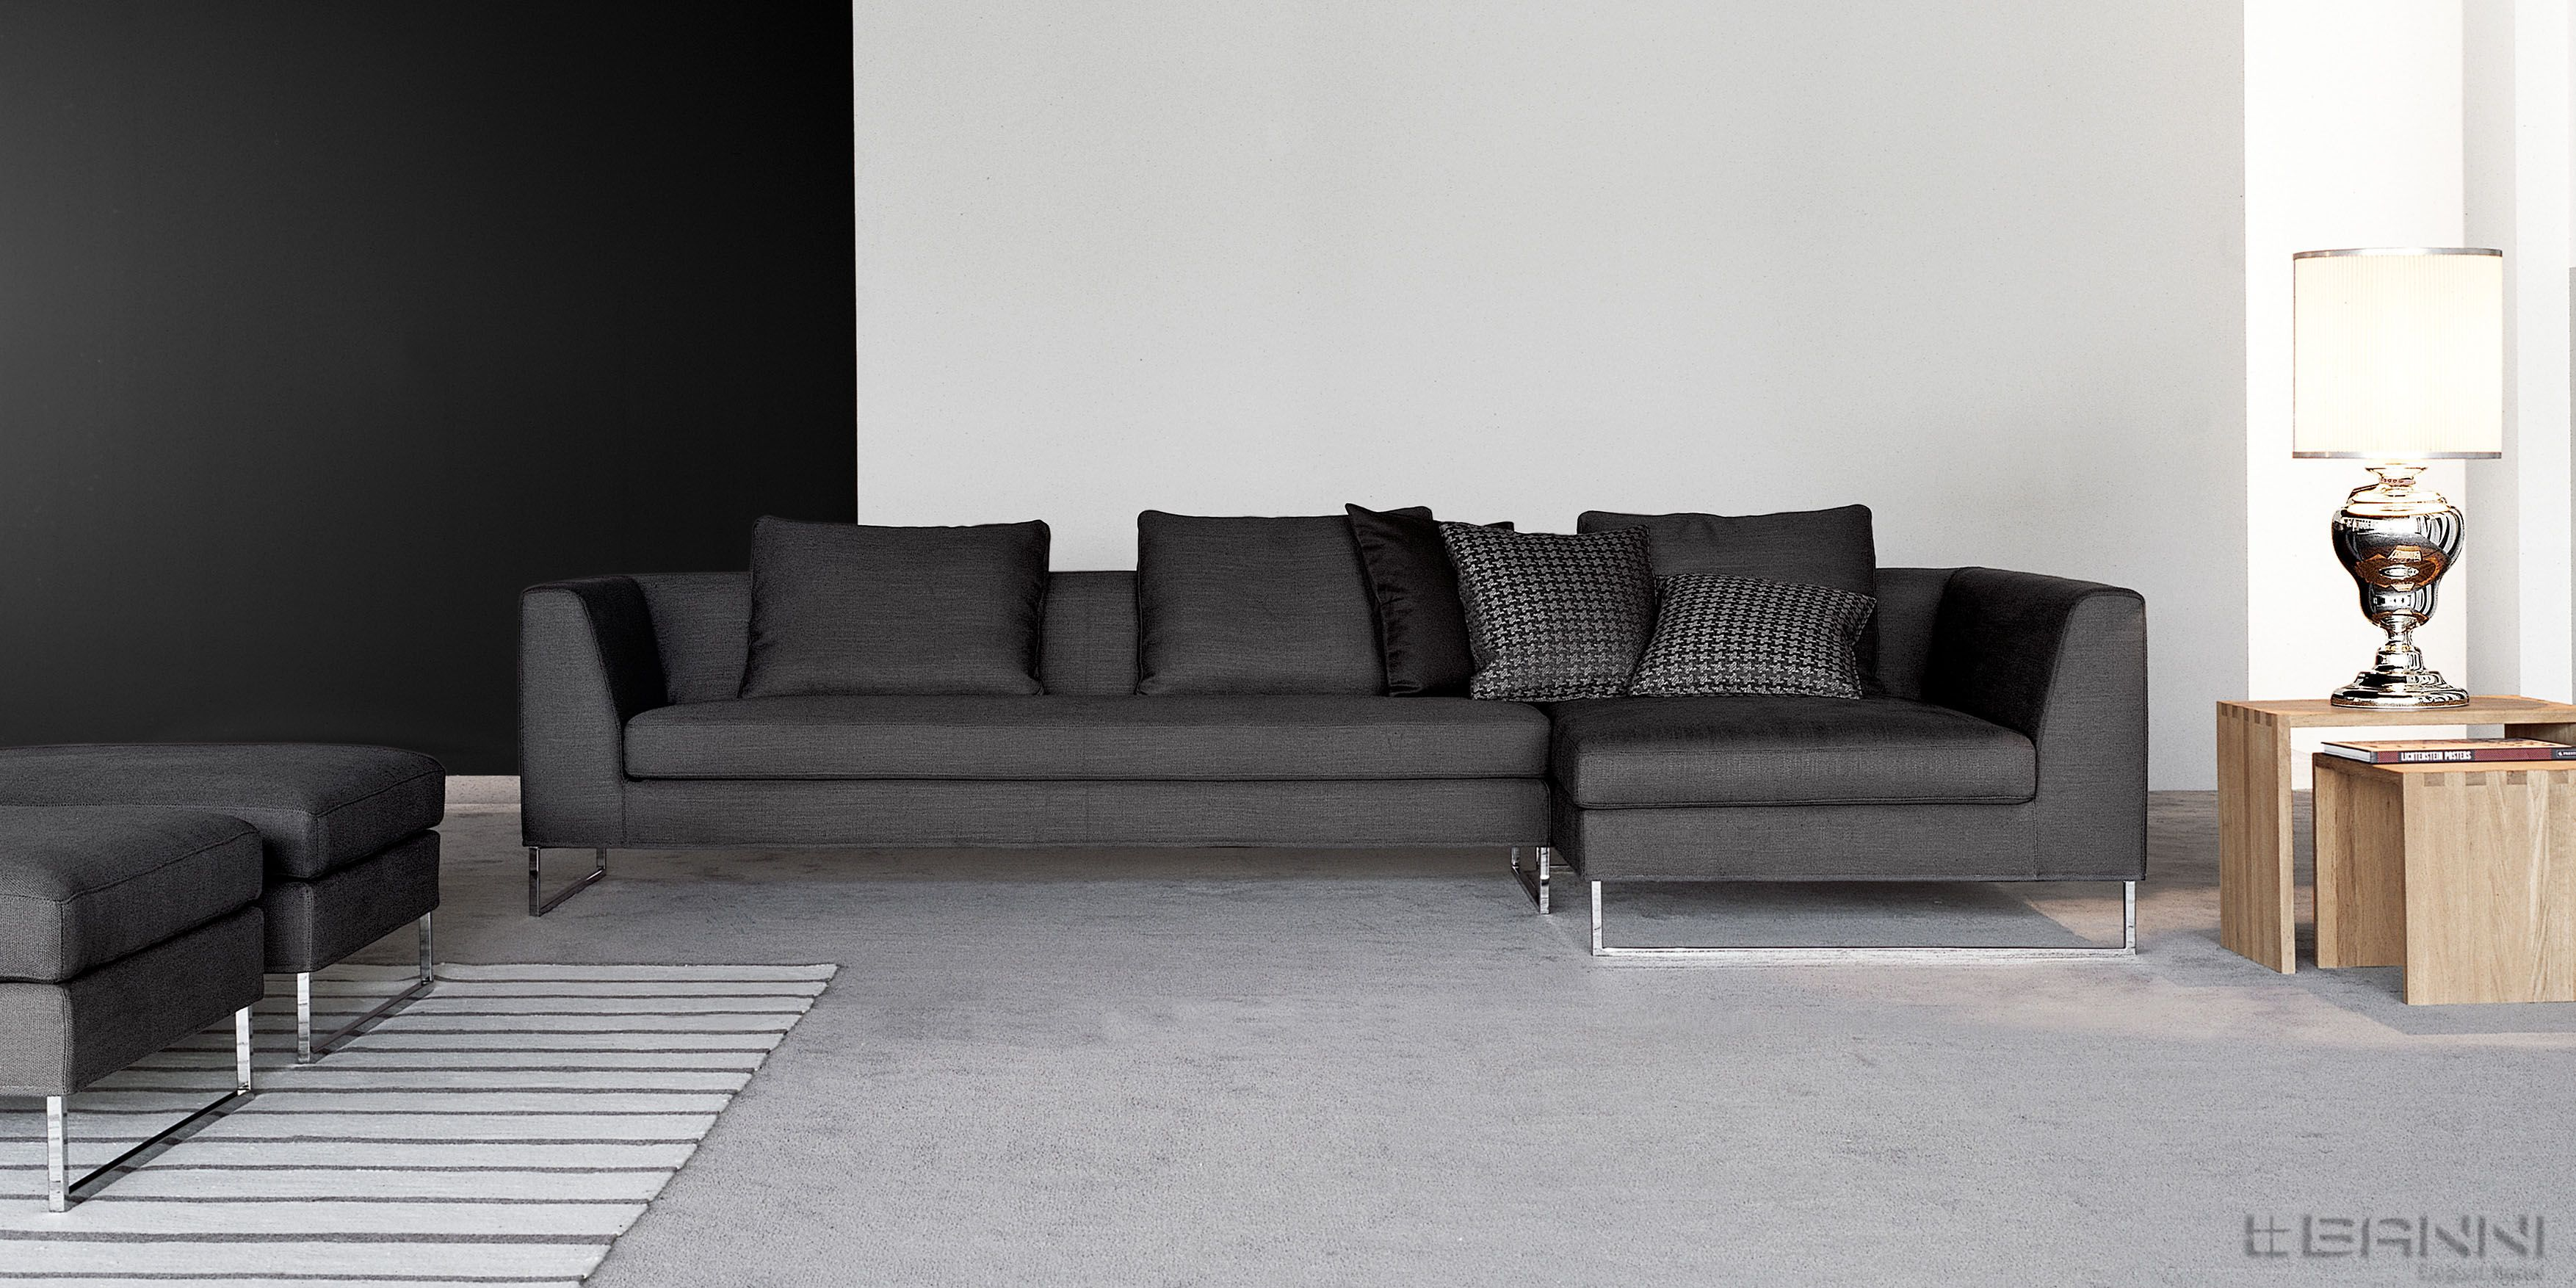 Banni Muebles Banni Flexteam Sofas Sofa Furniture Y Planets